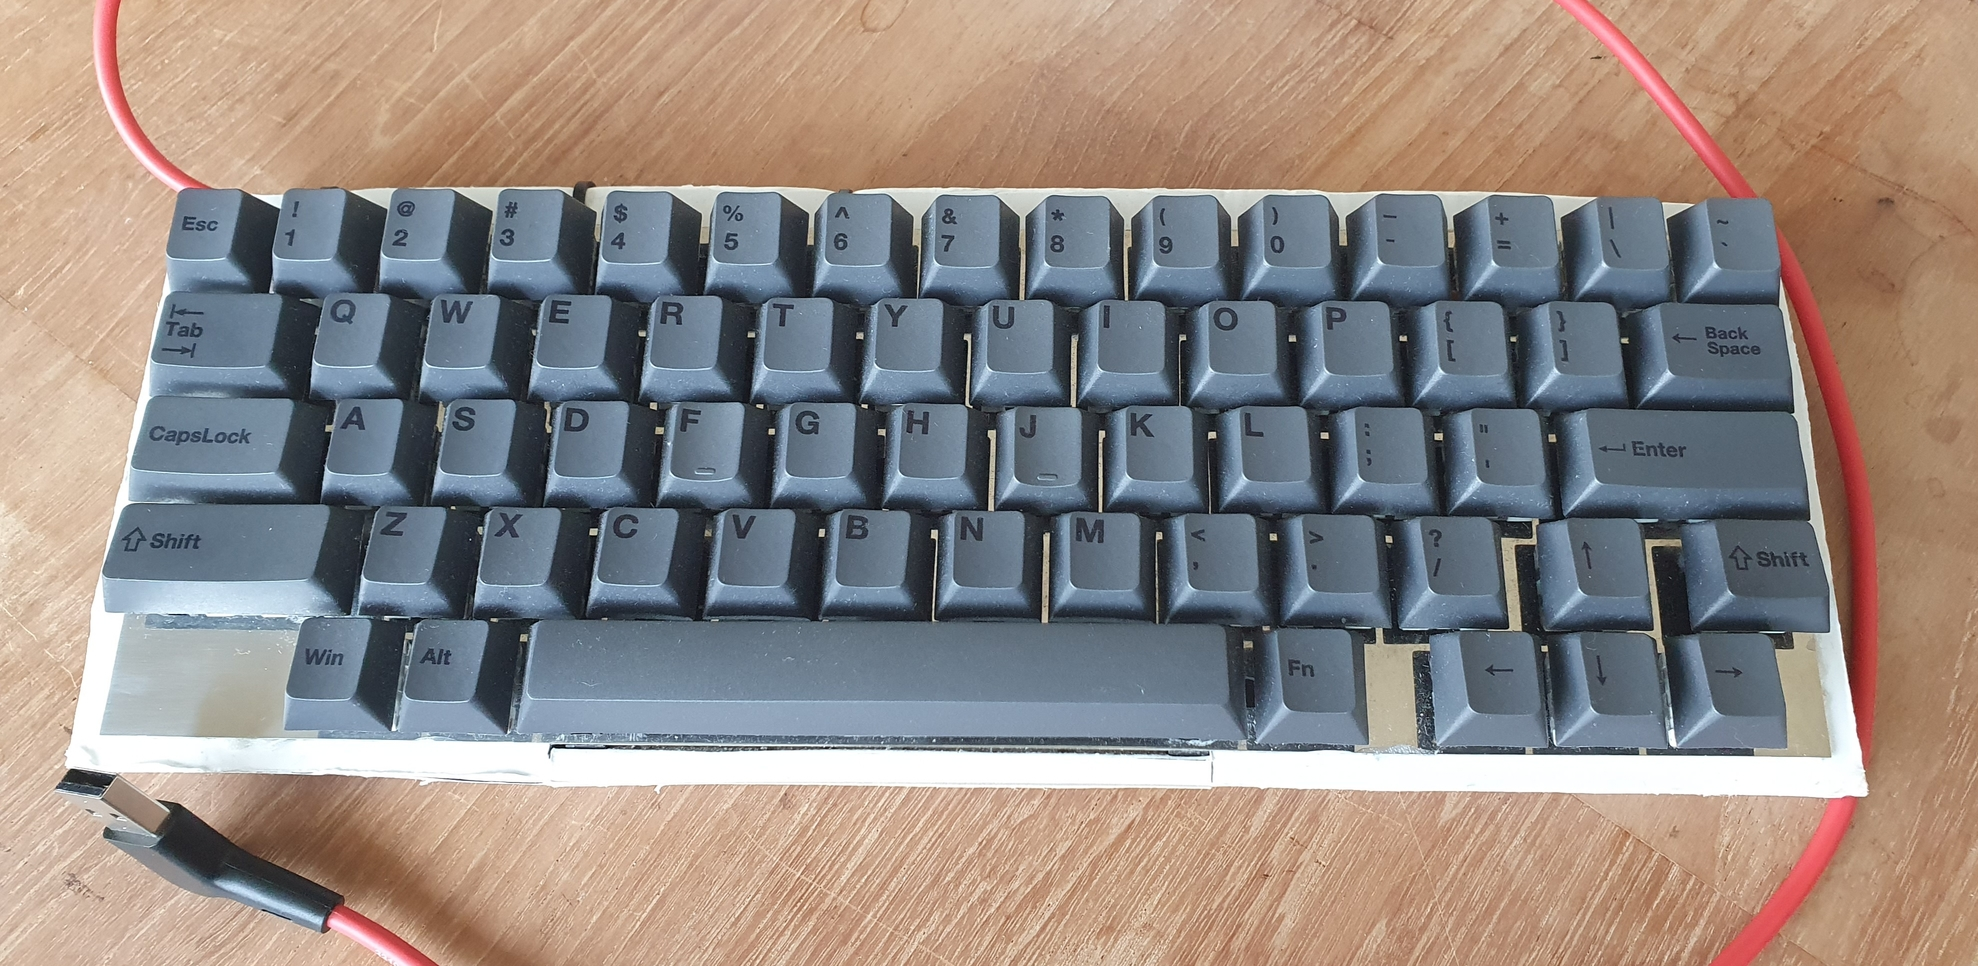 60 Hhkb Like Layout But With Dedicated Arrows Key Layouts